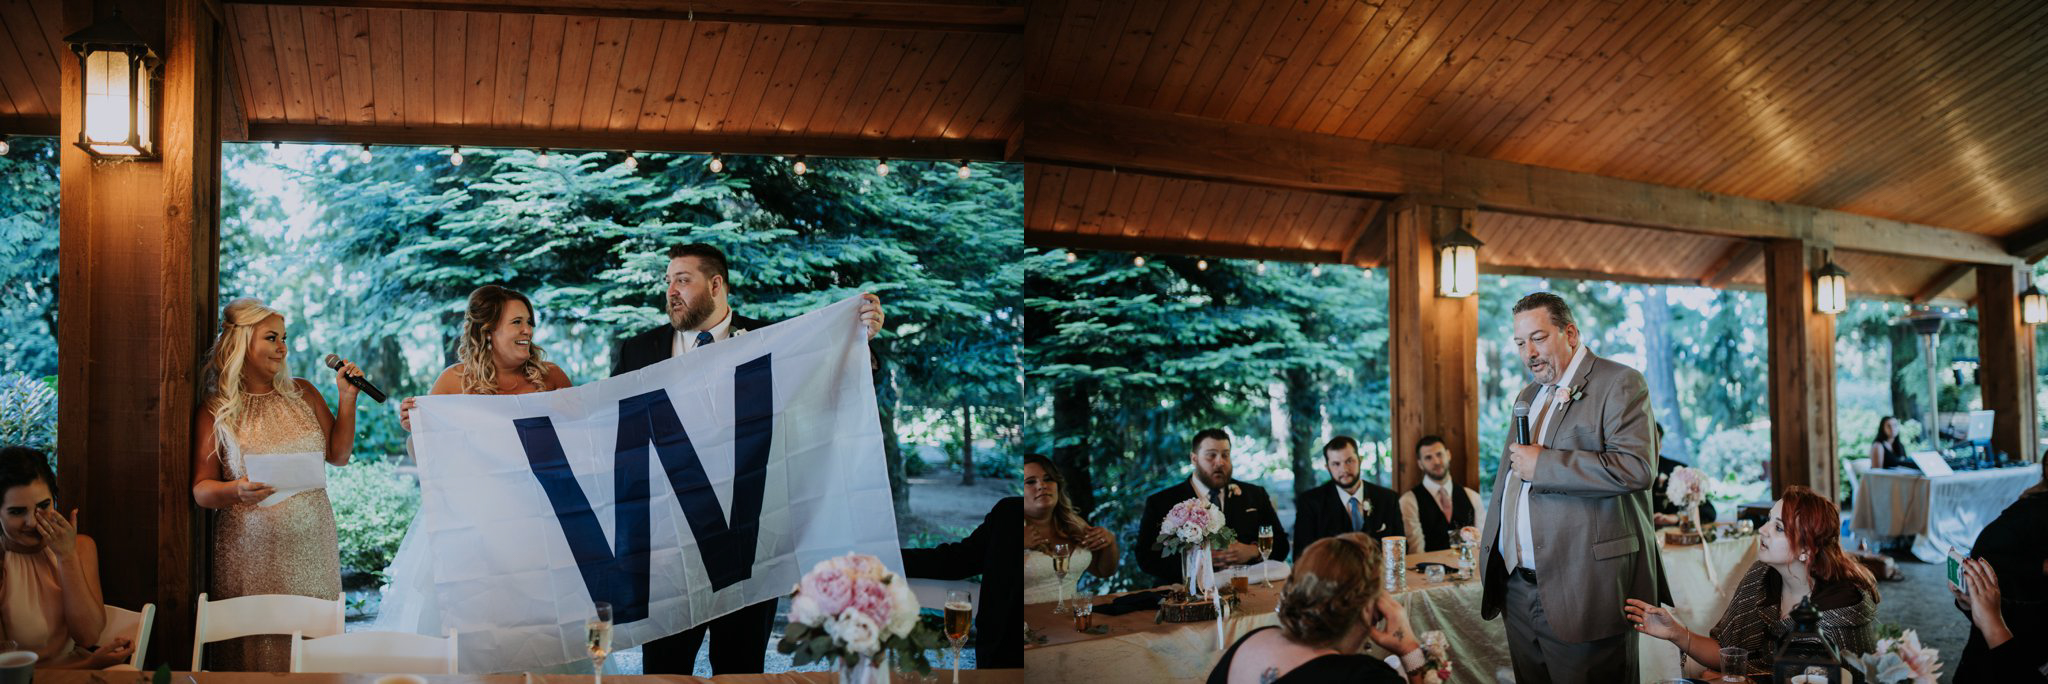 evergreen-gardens-bellingham-wedding-seattle-photographer-caitlyn-nikula-91.jpg